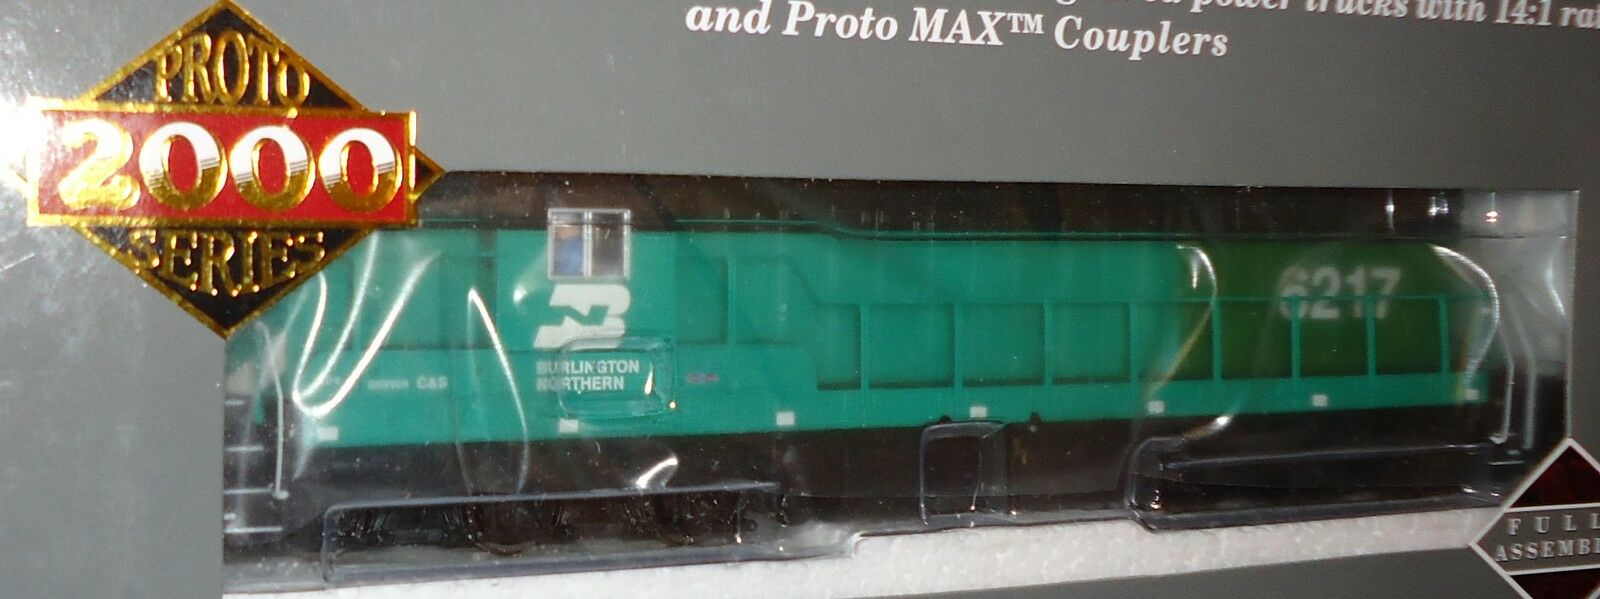 HO Proto 2000 SD9 - Burlington Northern Railroad    6217   DCC Sound  920-41600 127acd